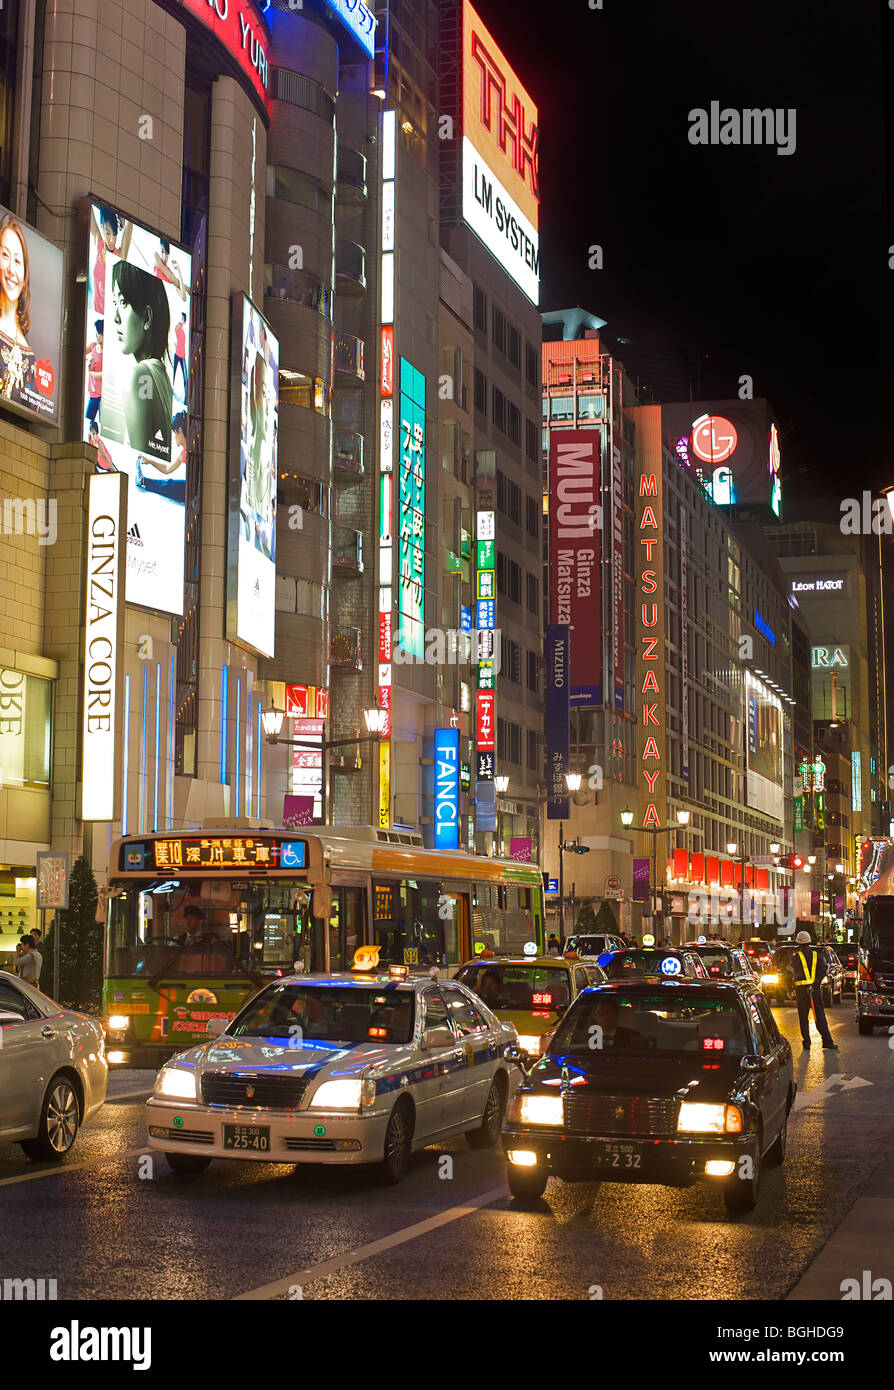 Taxis and traffic. Ginza at night, Tokyo, Japan Stock Photo